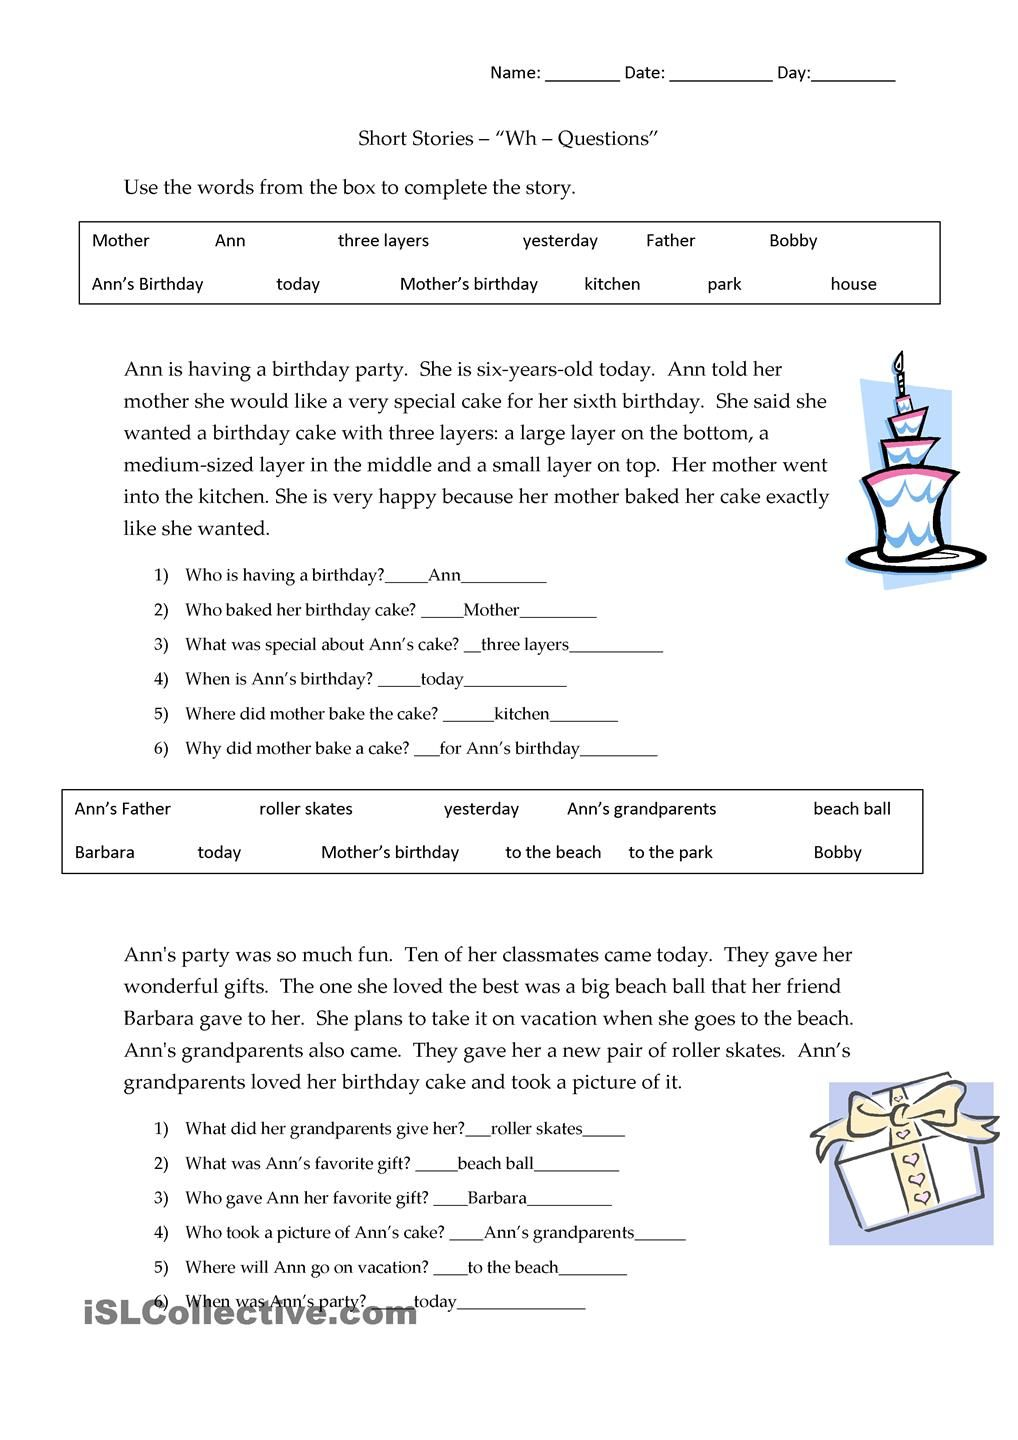 hight resolution of Short Stories Wh-questions - answers   Wh questions worksheets